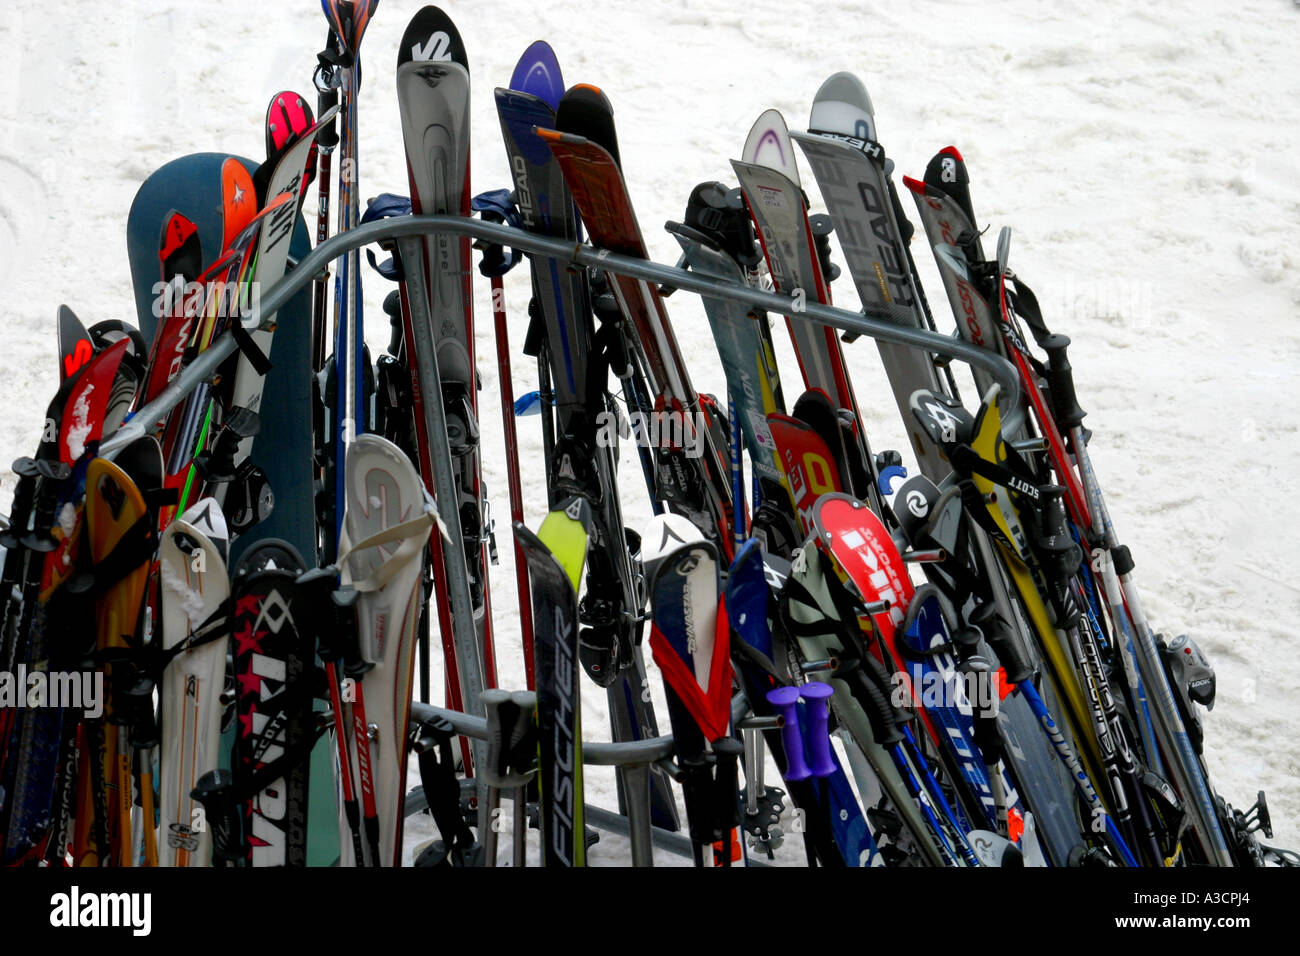 Ski rack full of skis and snowboards Skiing in the Canadian Rockies - Stock Image